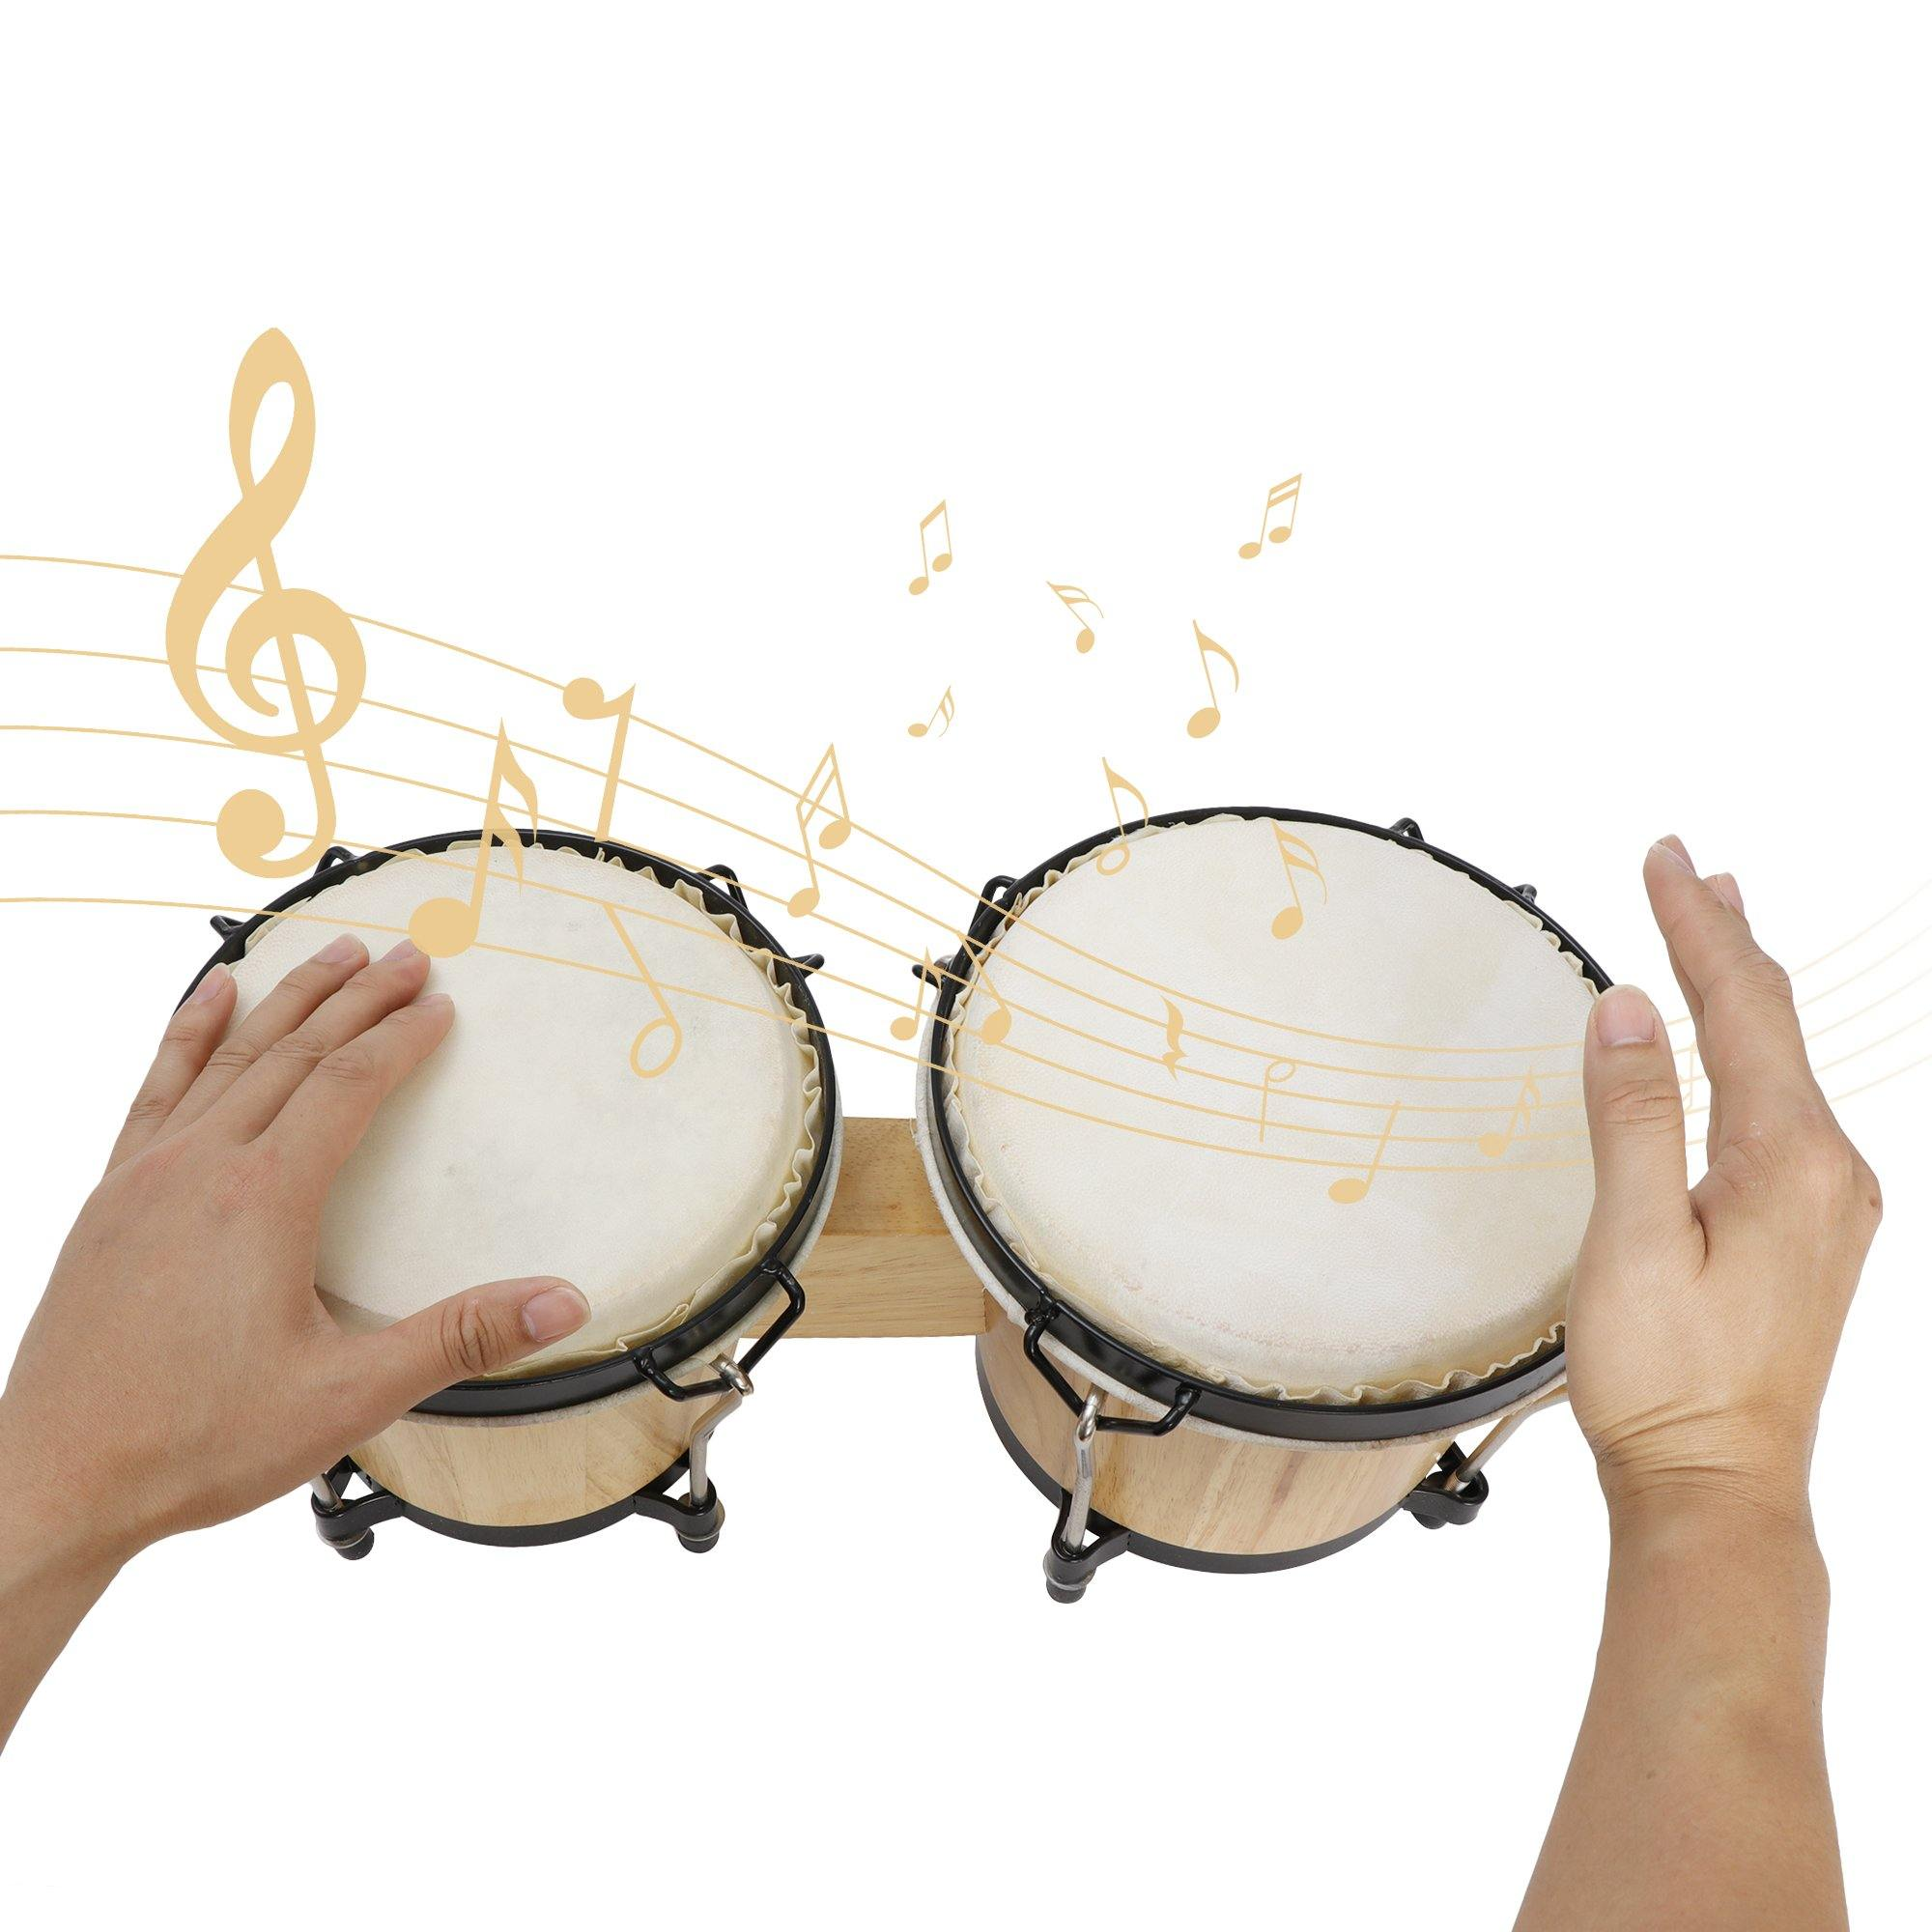 Drums & Percussion Folk & World Hand Drums Wood and Metal Bongo ...